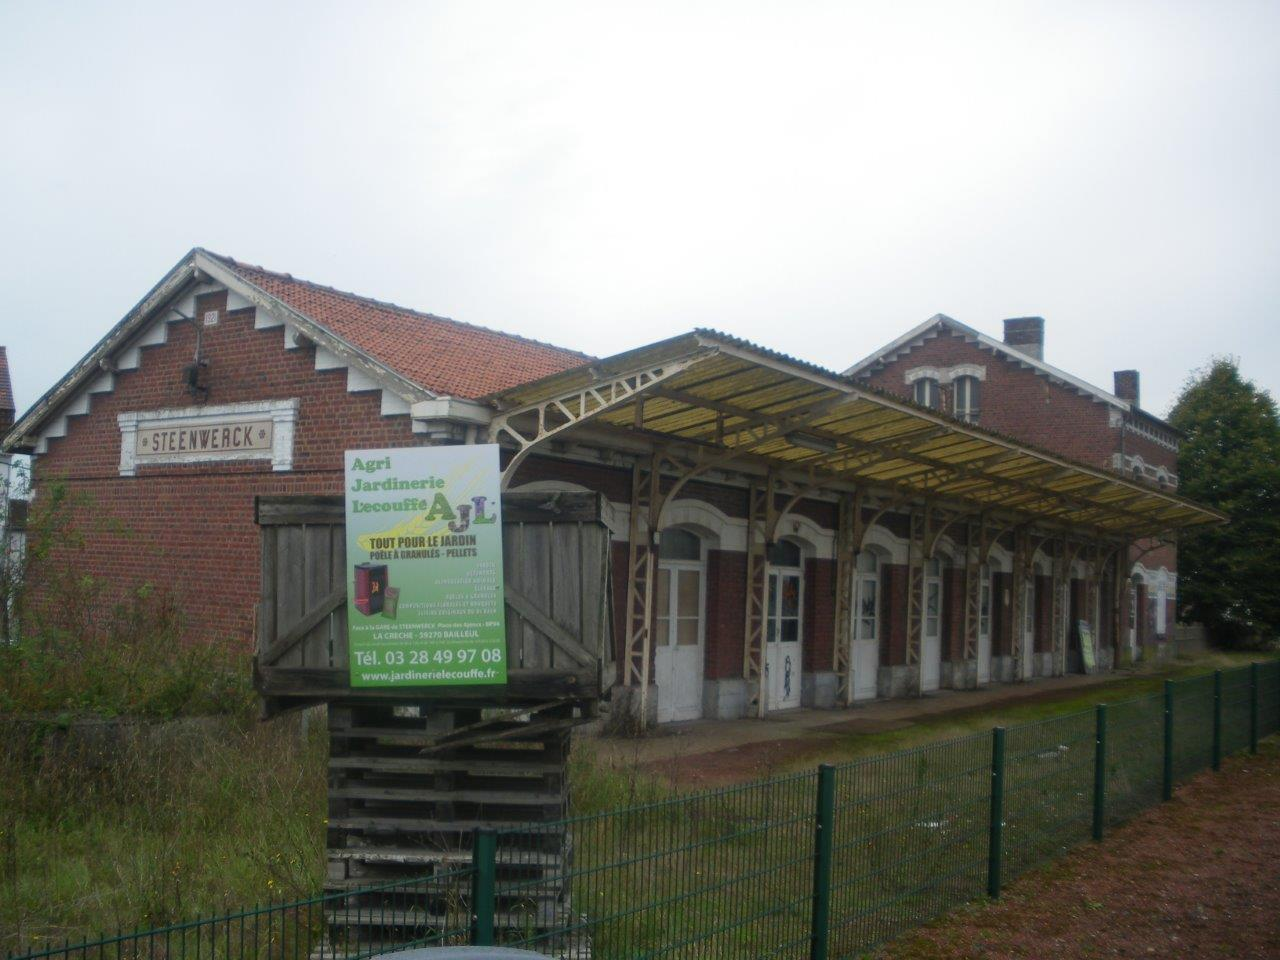 gare-de-steenwerck-train-station